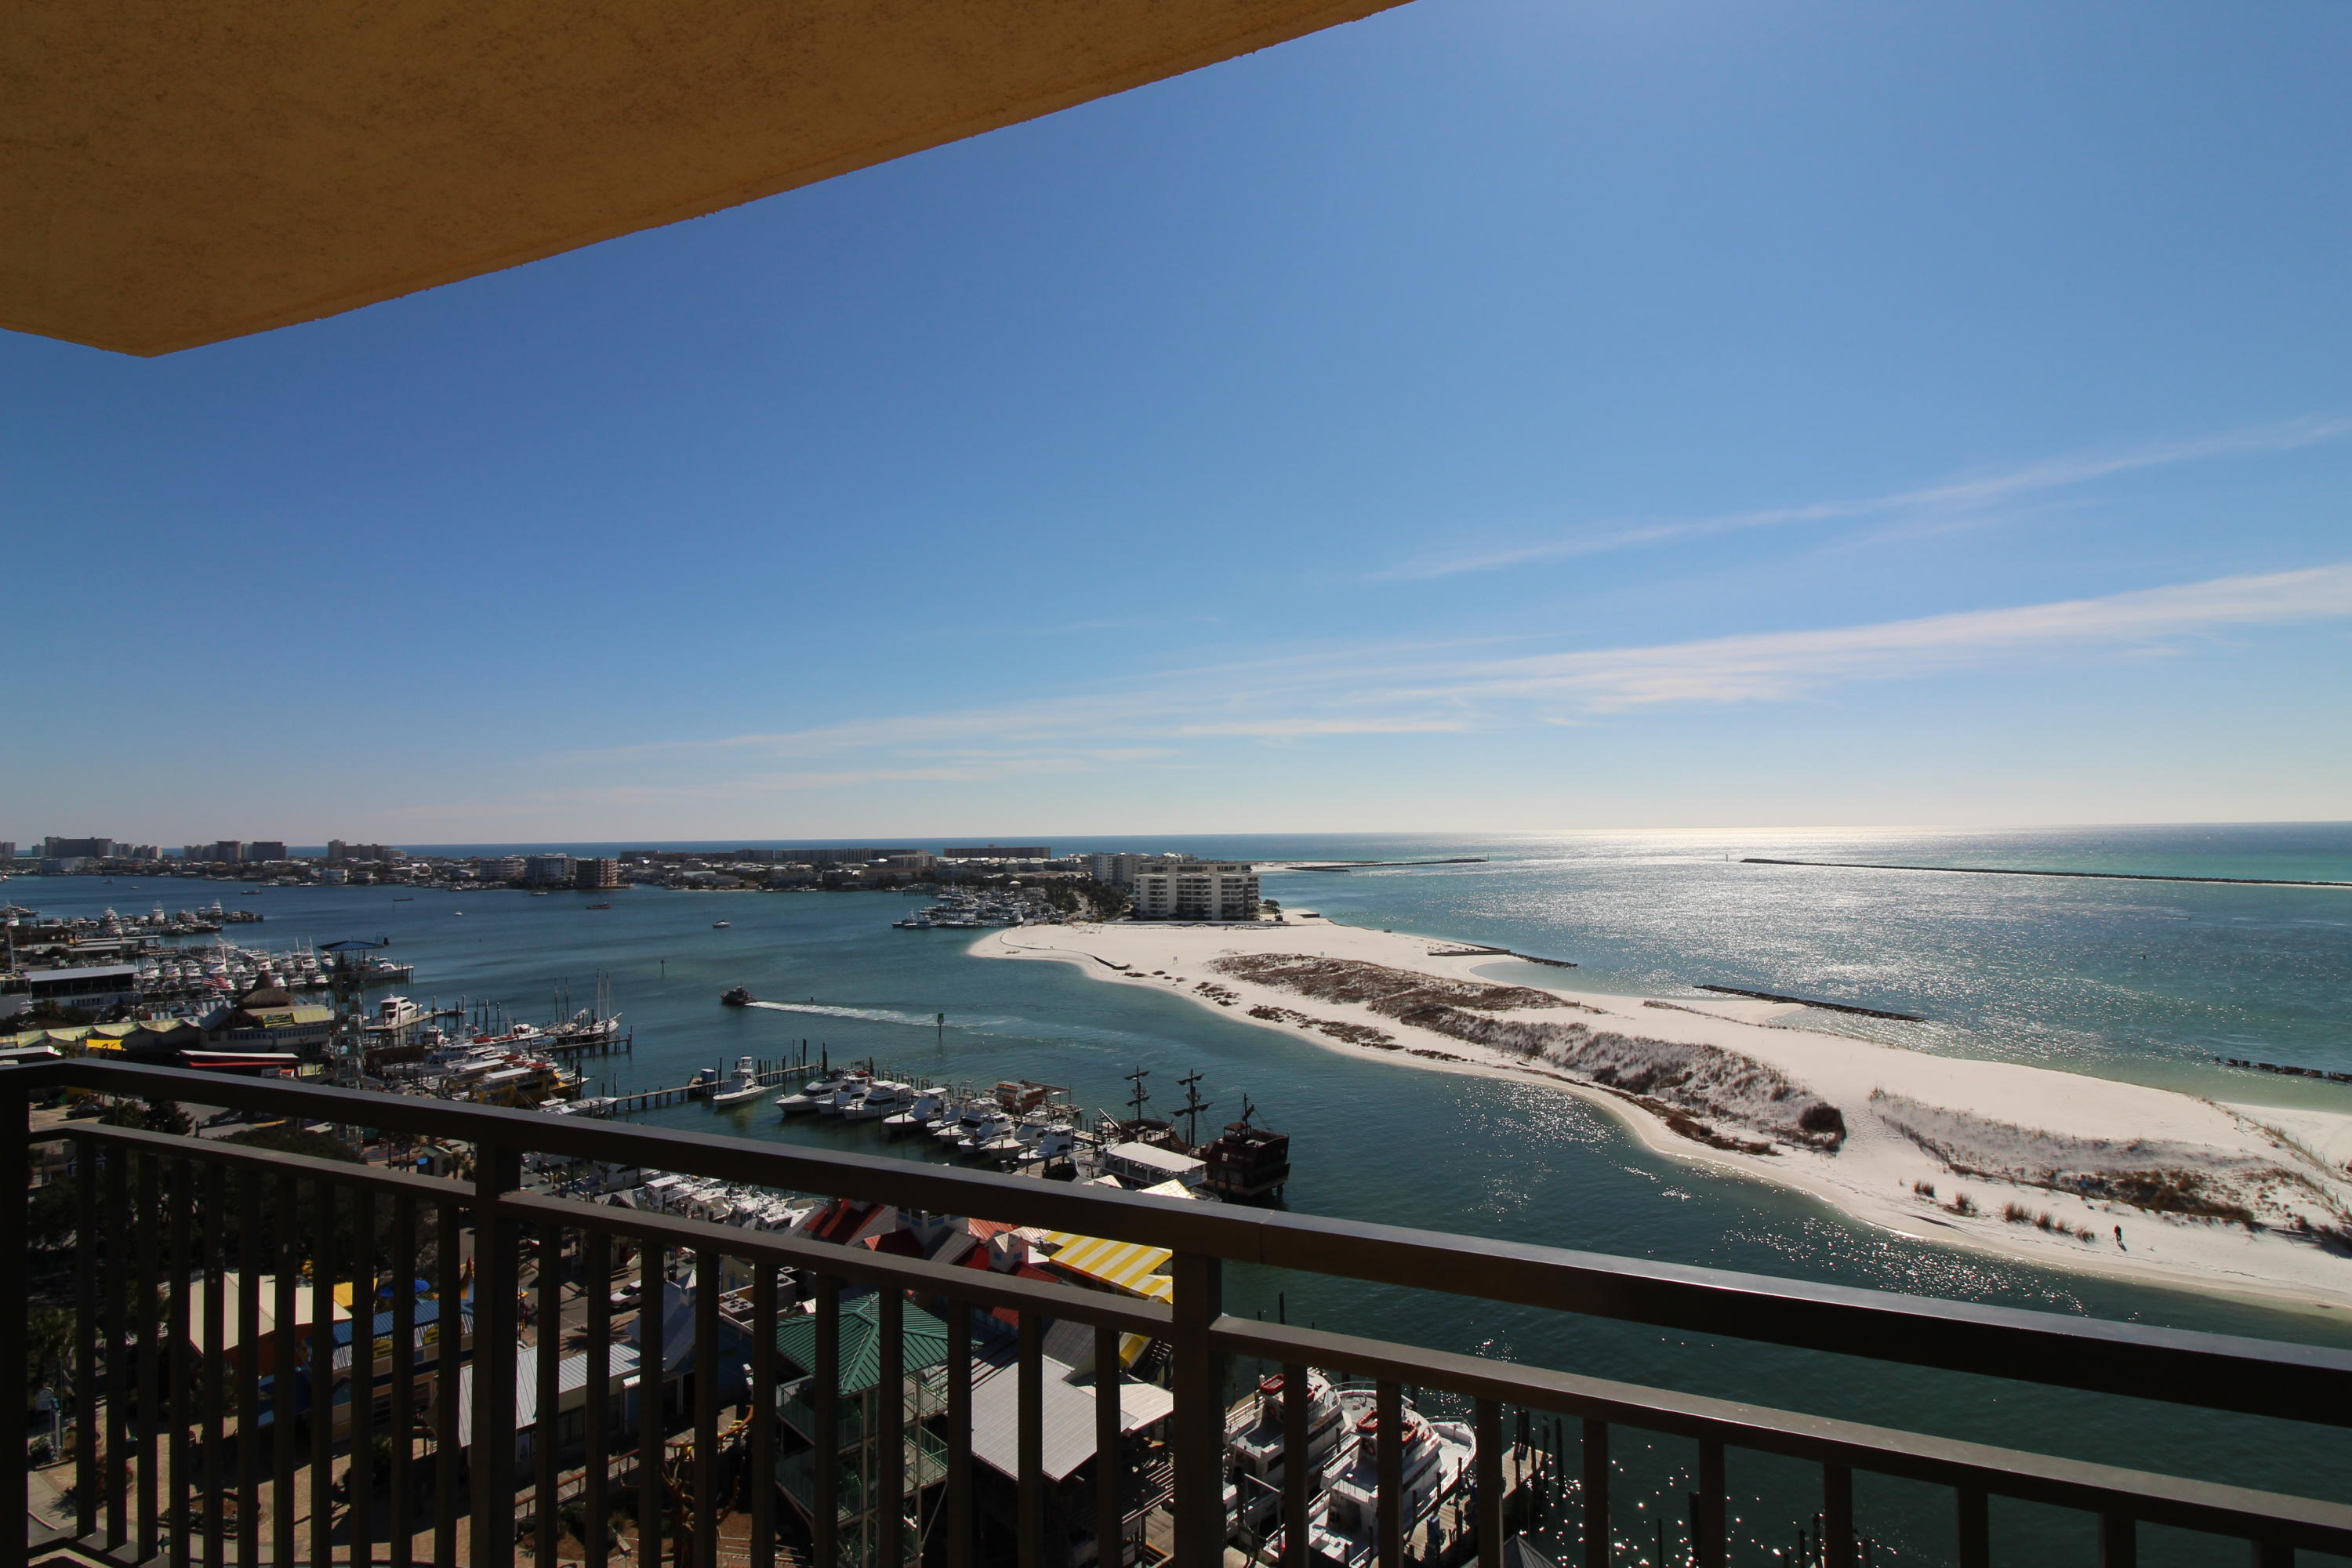 Fractional Ownership. From this 4BR/4BA 9th floor location, with panoramic views, all you are going to see are glowing colorful sunsets and the crystal clear emerald green waters of the Gulf, Pass & Harbor. You will never want to leave! This location hits the sweet spot in the building. The unit offers six weeks of owner use. If you buy both 906E and 906F you will get 12 weeks of use. You won't find a deal like this anywhere else to get your R&R in style when you need it.   Kitchen includes granite counters, bar, GE Profile Appliances, Italian porcelain floors, & crown molding throughout. Master offers a garden tub, separate shower and Italian marble flooring. Amenities include a 9700 sq.ft. European spa & fitness center,kids club,arcade, restaurants Owner Financing  available.